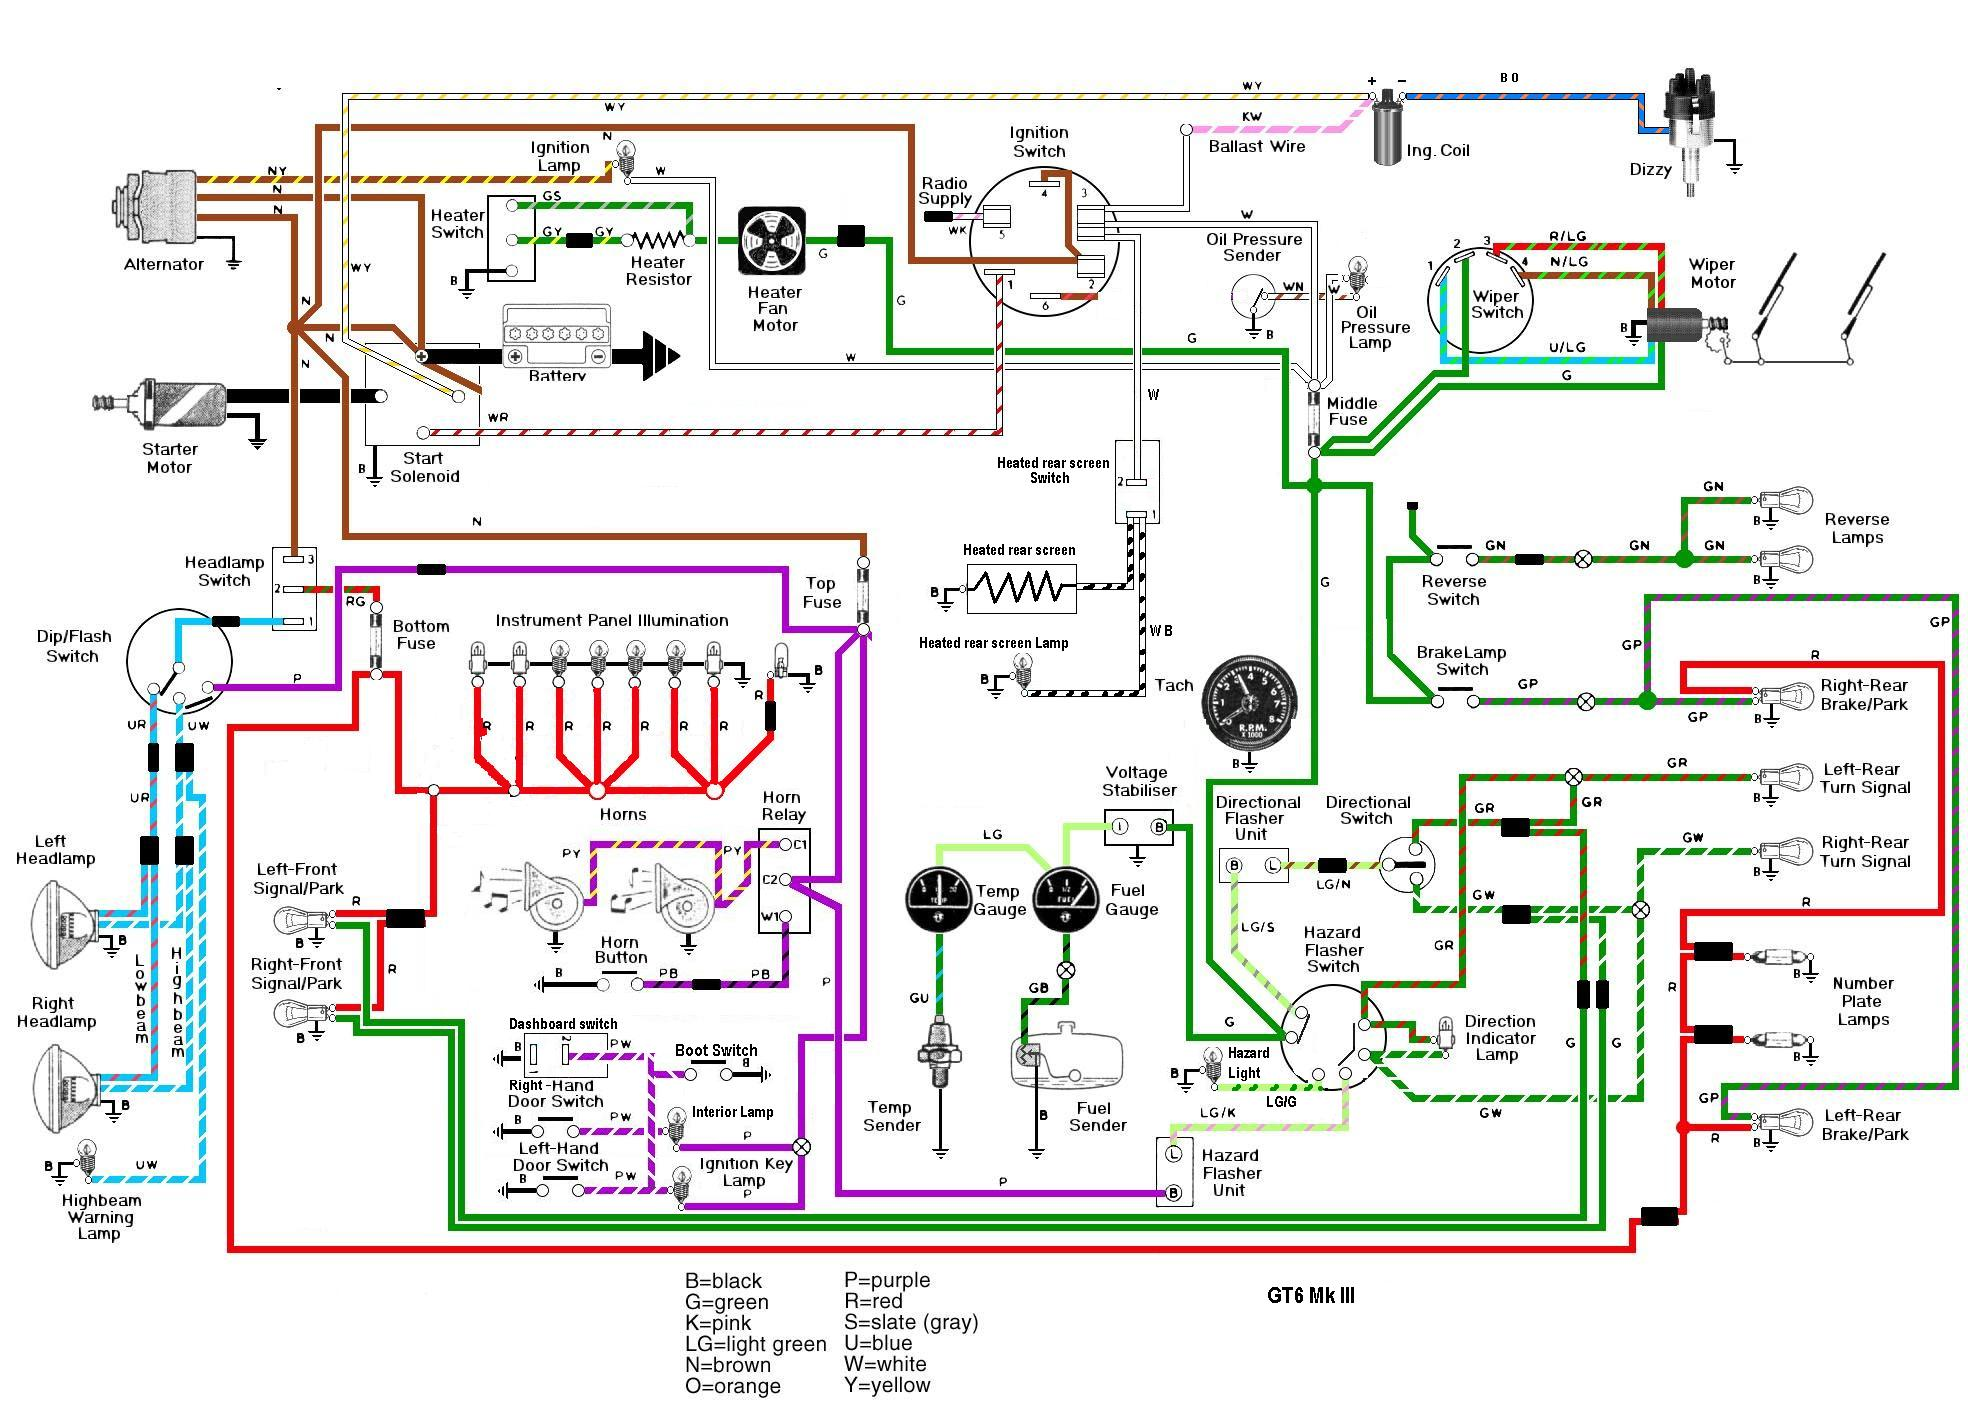 Mgb Wiring Schematic 104 Diagram Detailed Air Cooled Alternator 73 Vw Beetle Moreover 2000